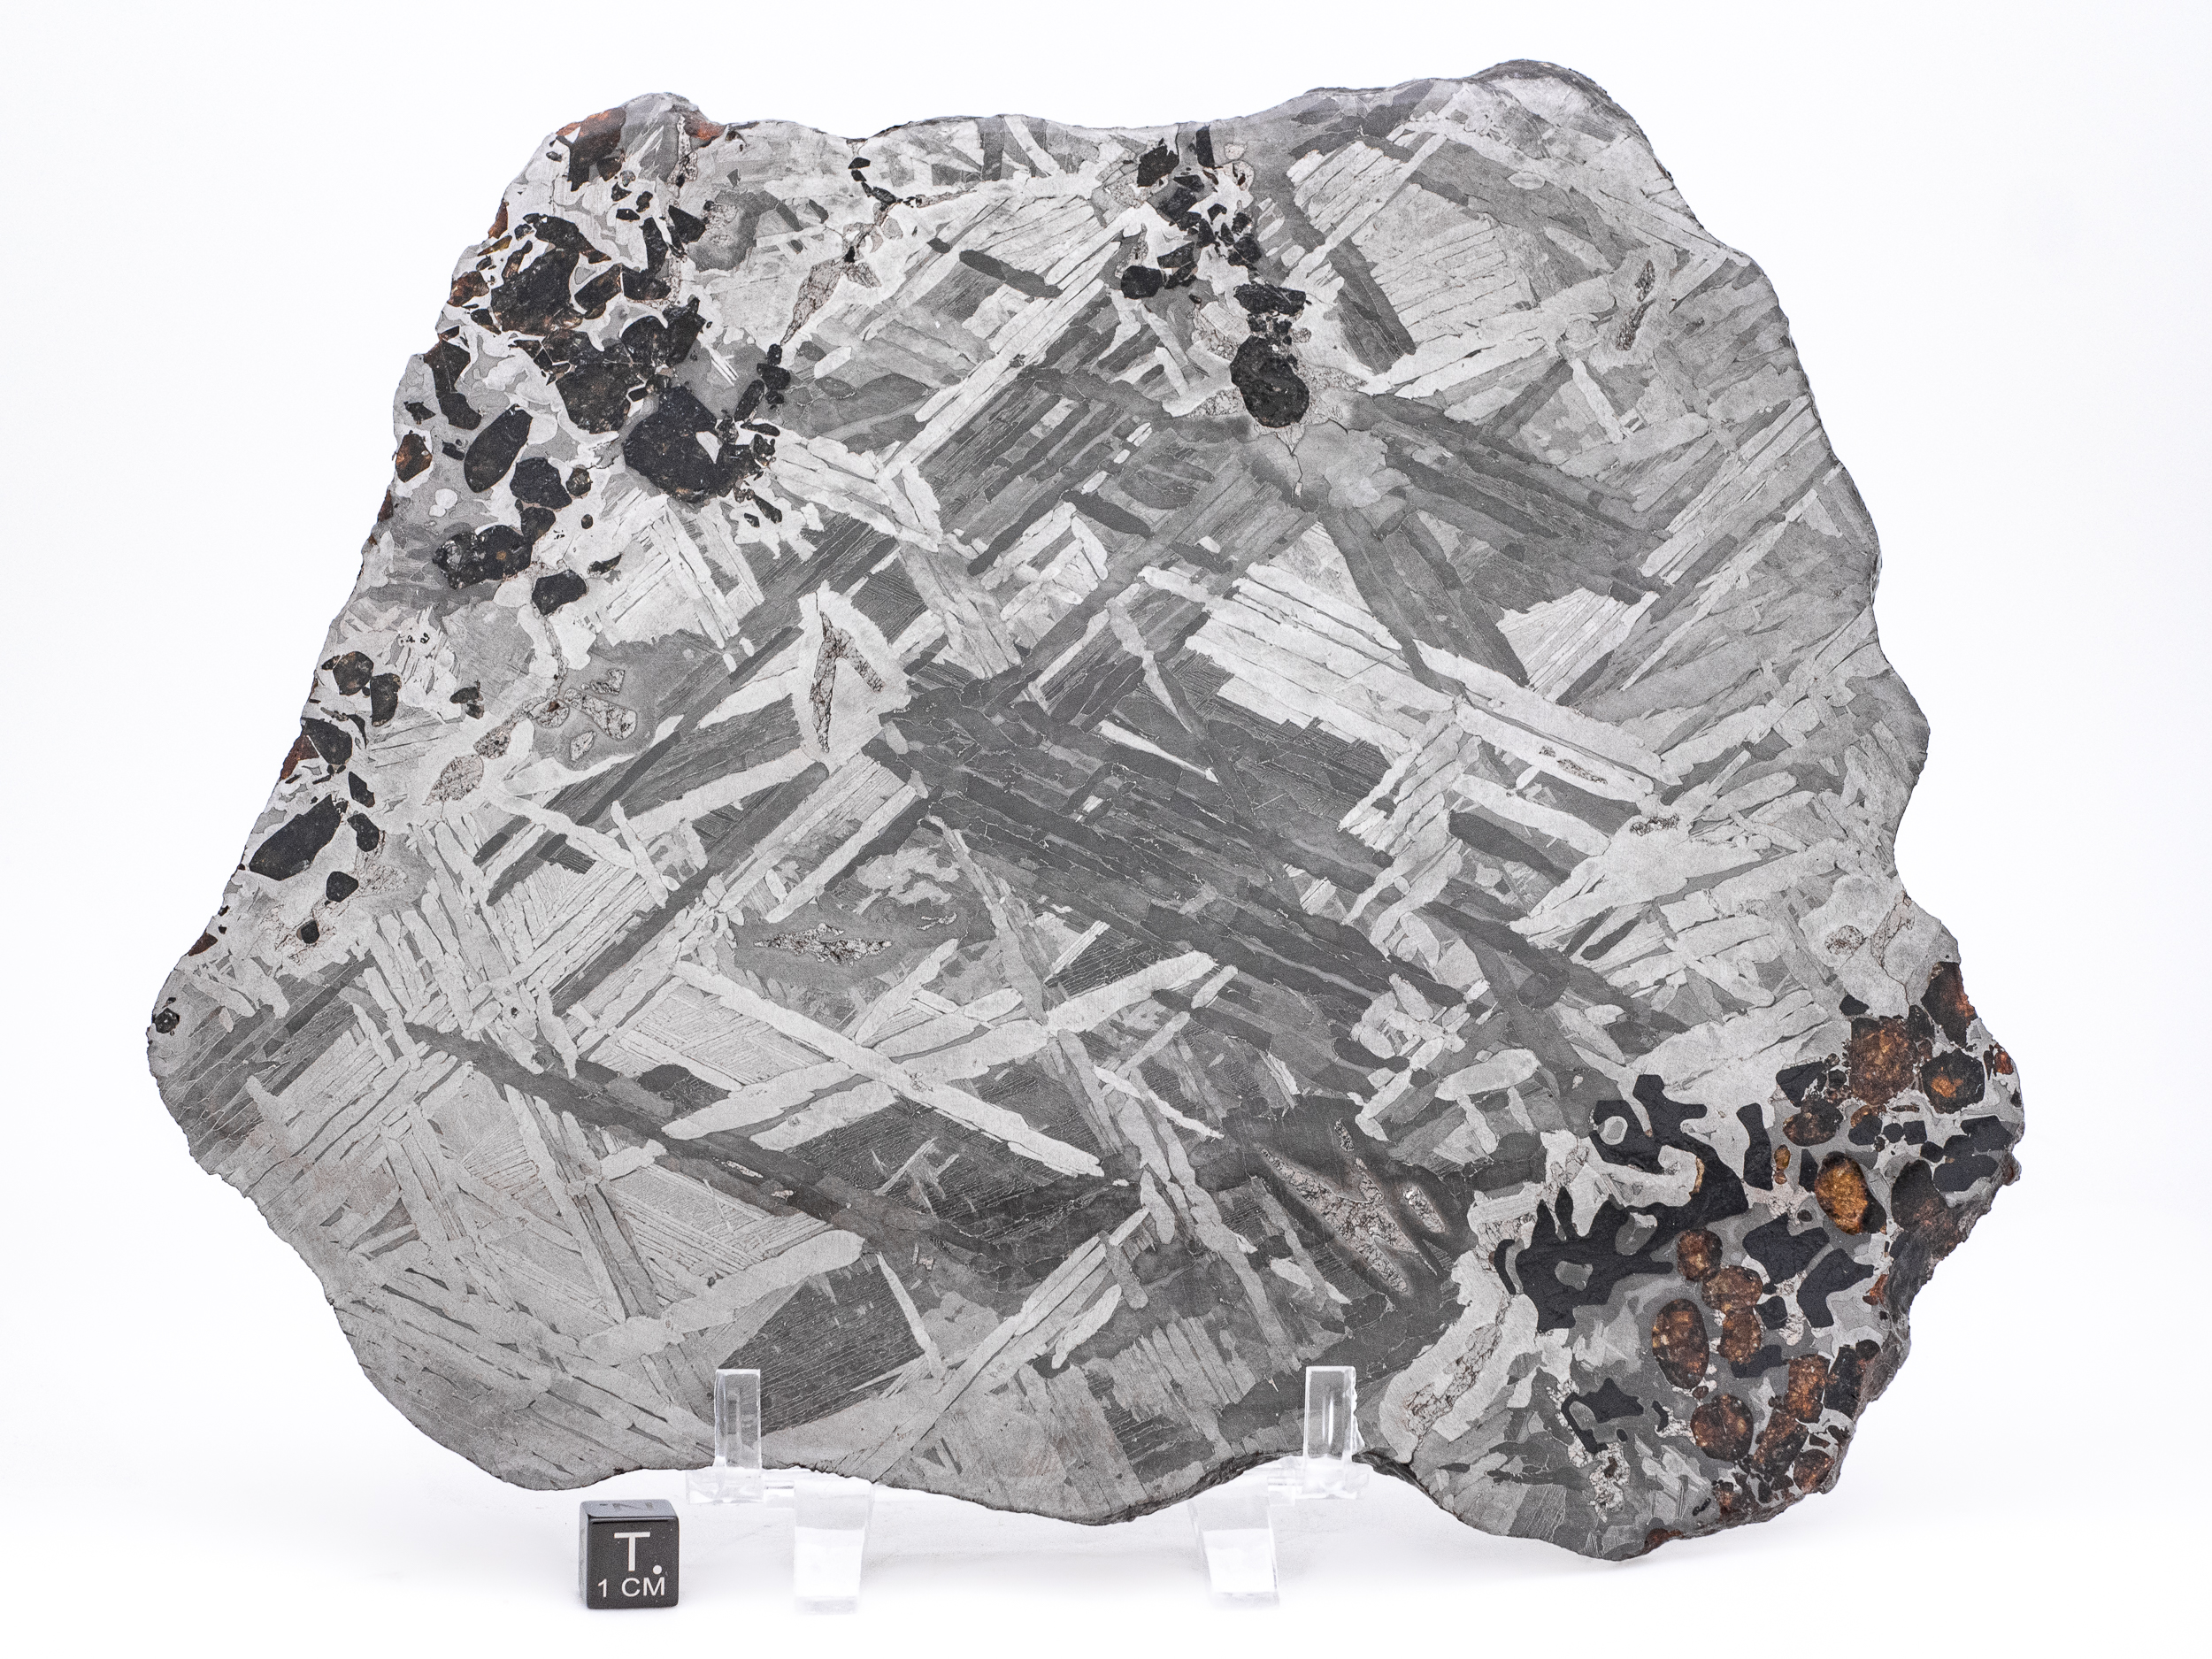 transitional seymchan pallasite